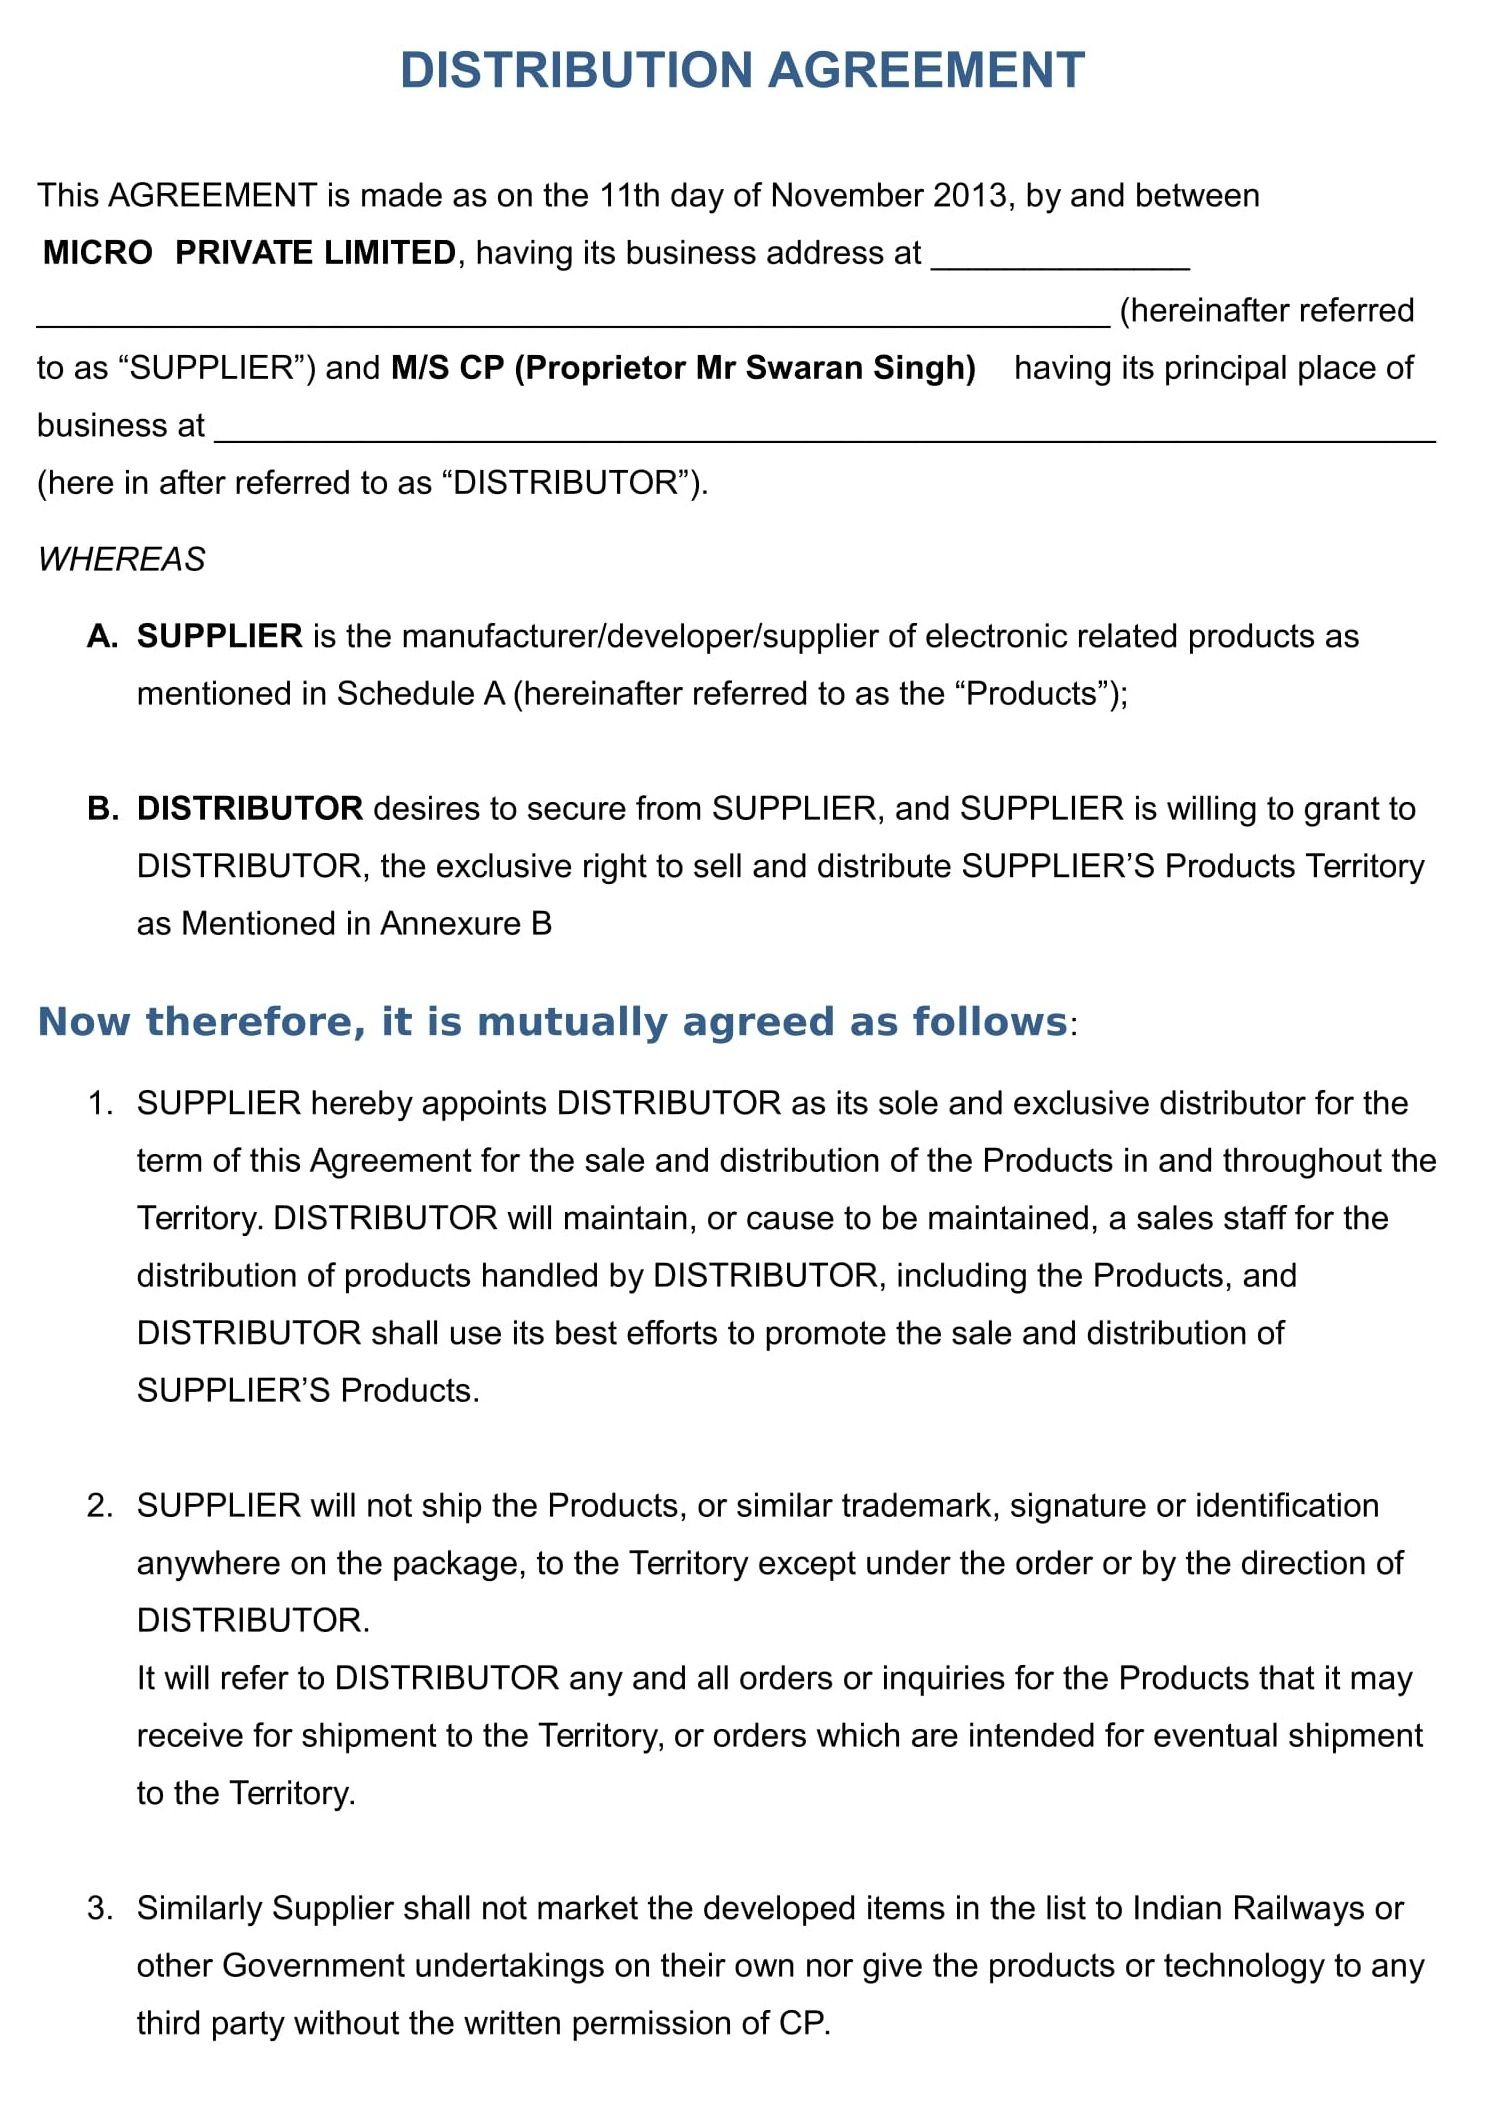 Distributor Agreement-1.jpg